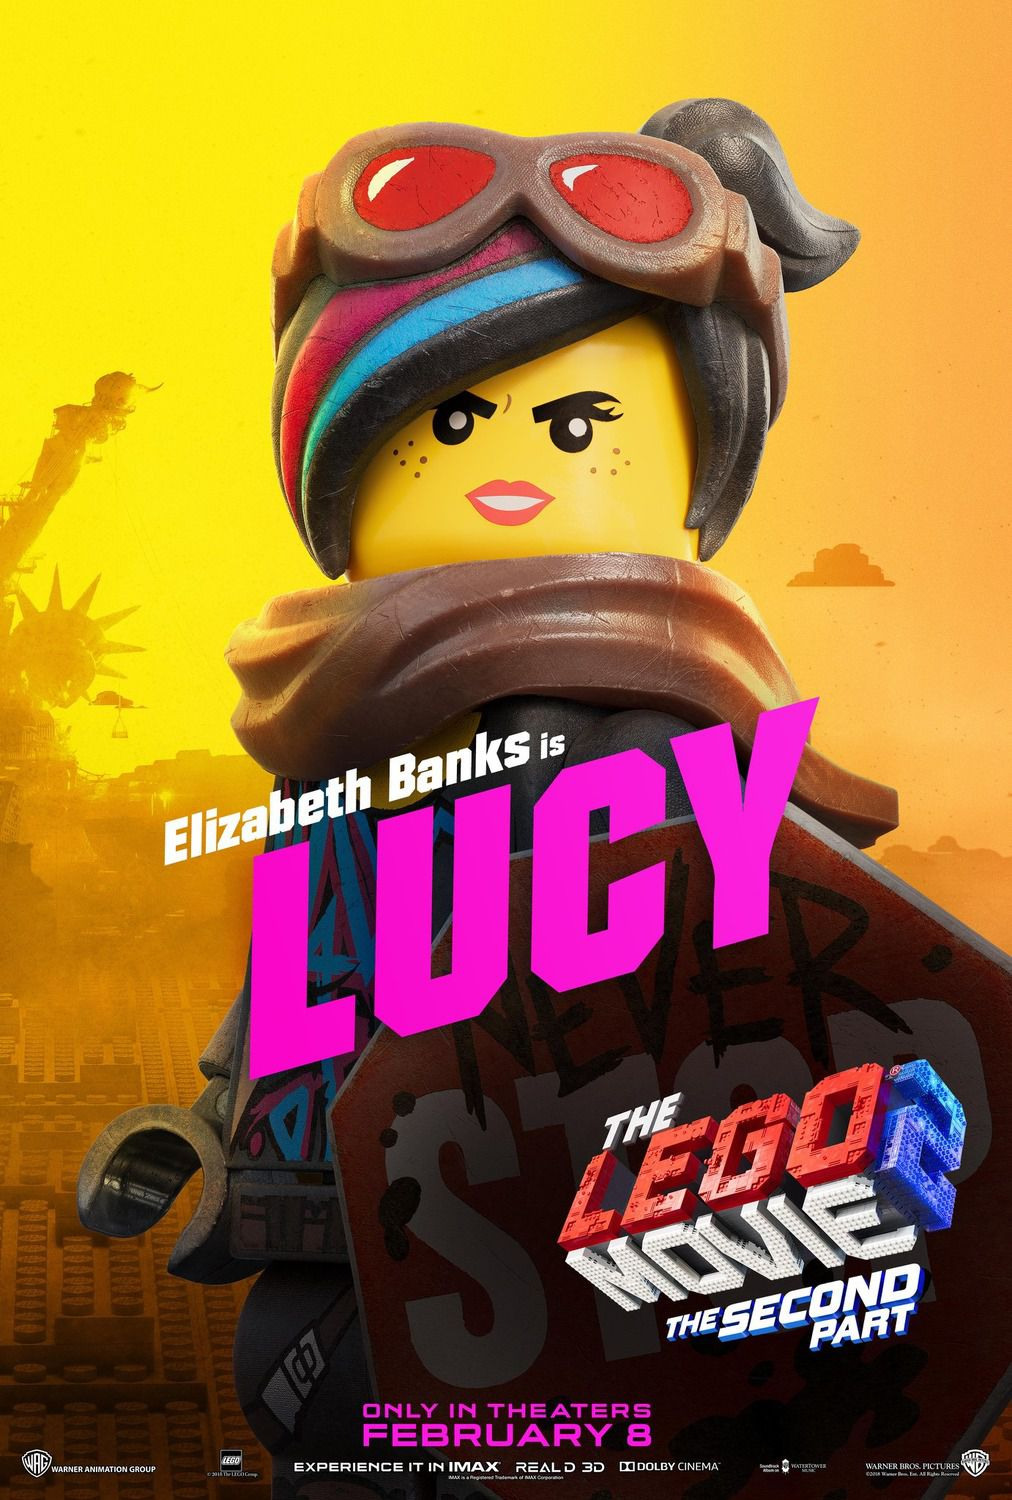 Elizabeth Banks is Lucy